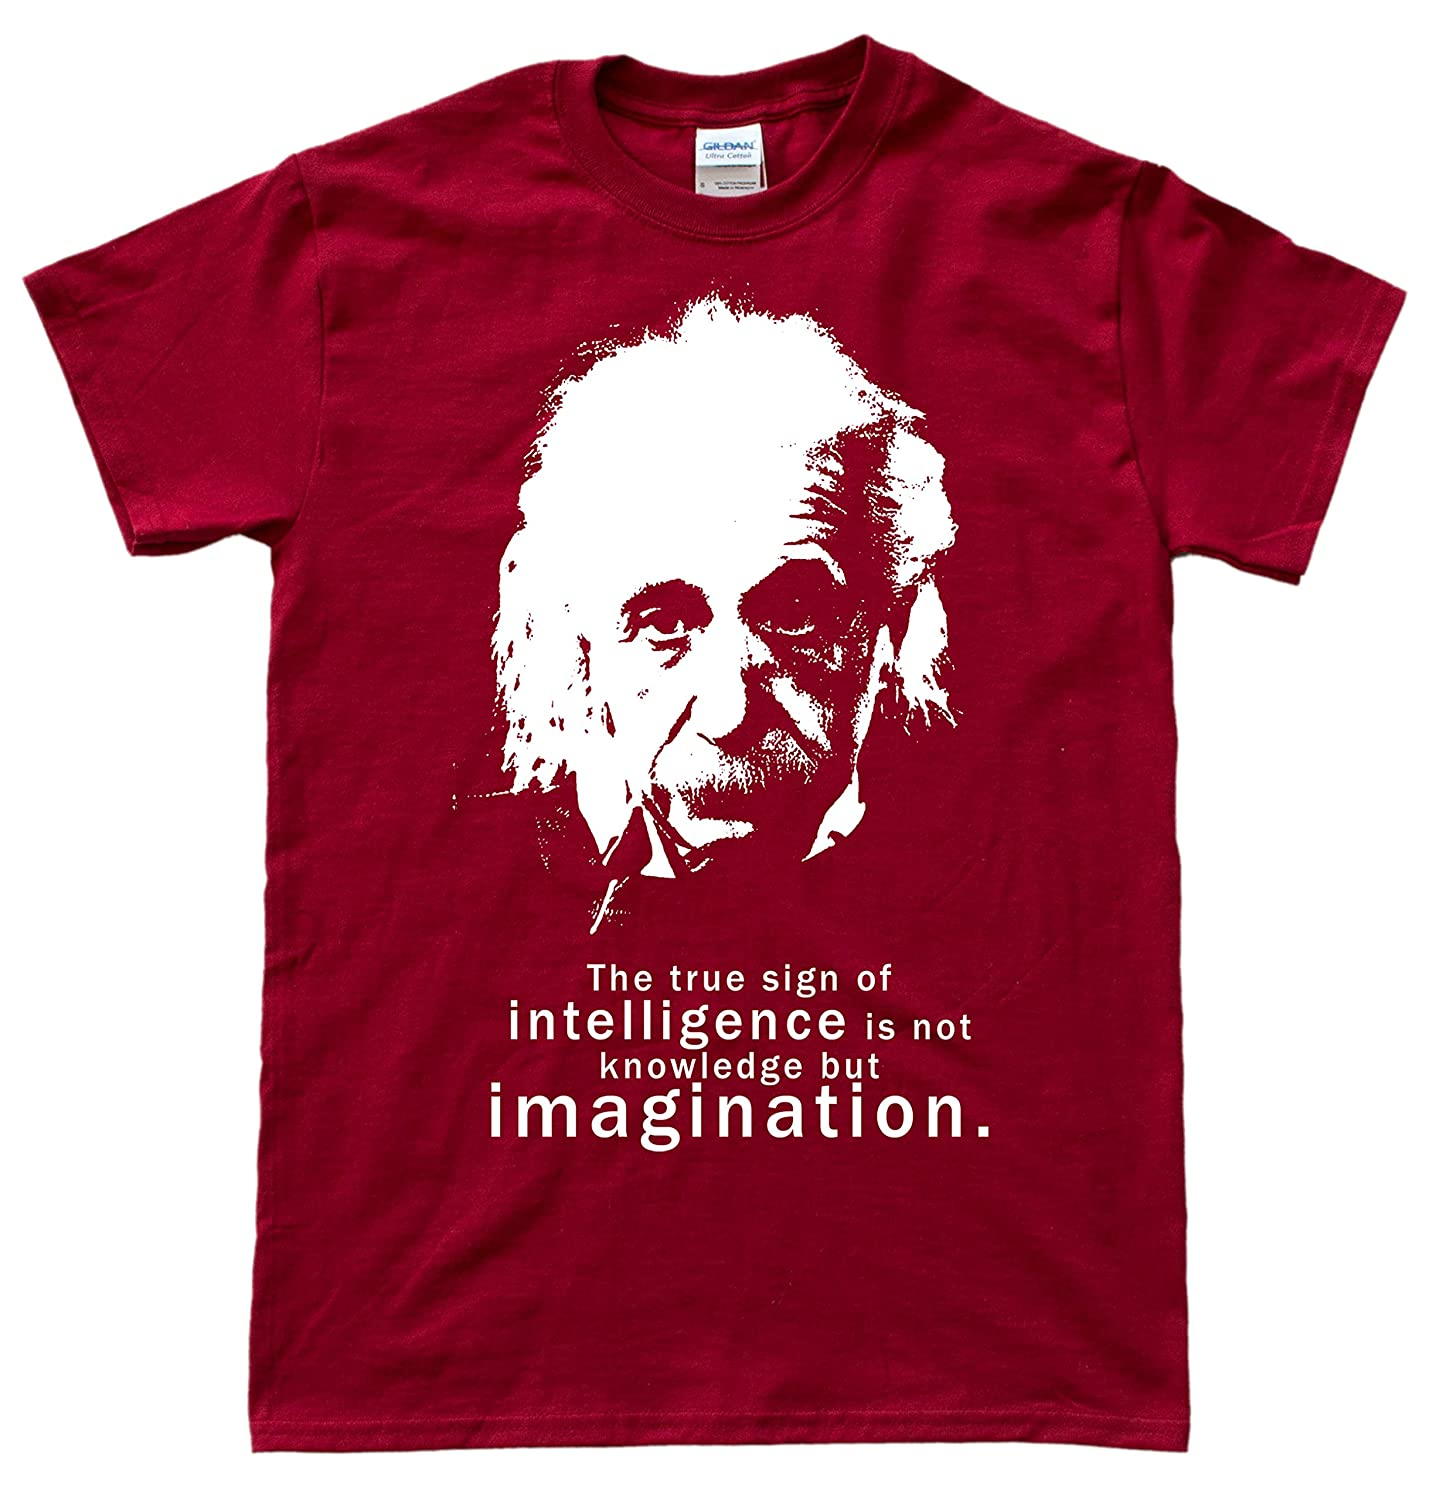 Albert Einstein Quote T-Shirt: Amazon.de: Bekleidung